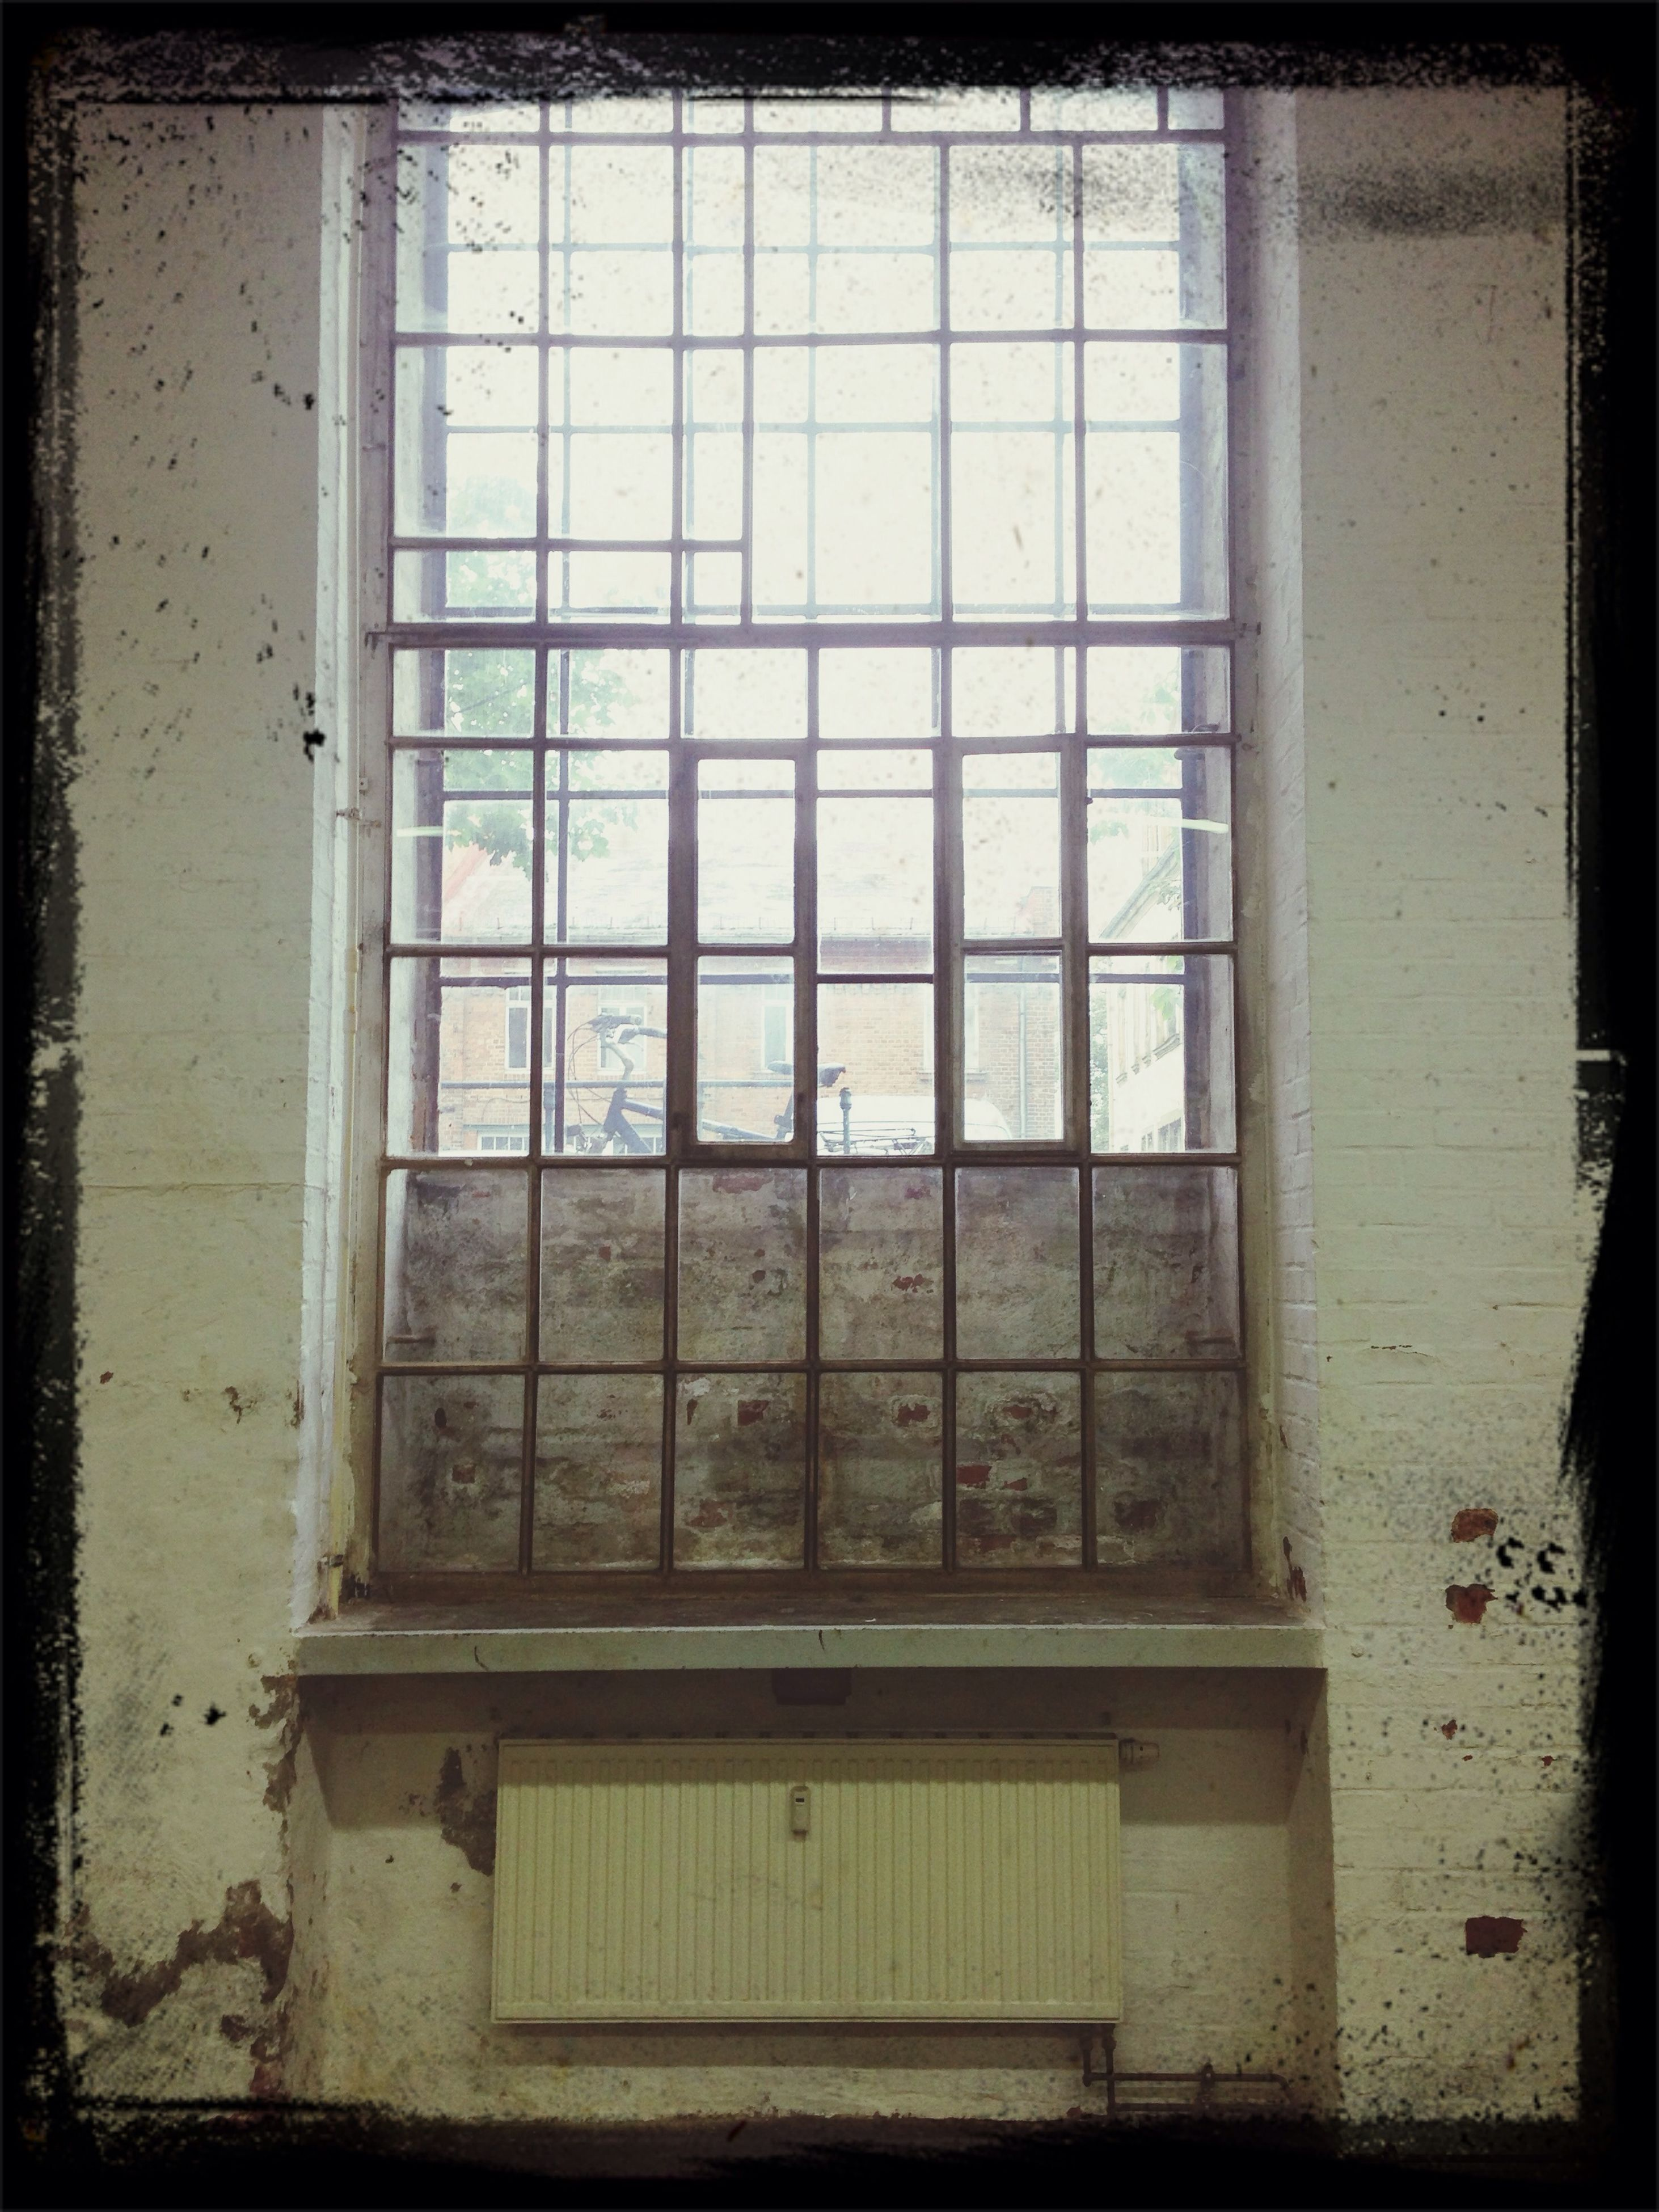 window, indoors, architecture, built structure, glass - material, house, transfer print, building exterior, auto post production filter, transparent, abandoned, day, closed, home interior, no people, wall - building feature, residential structure, window frame, wall, old